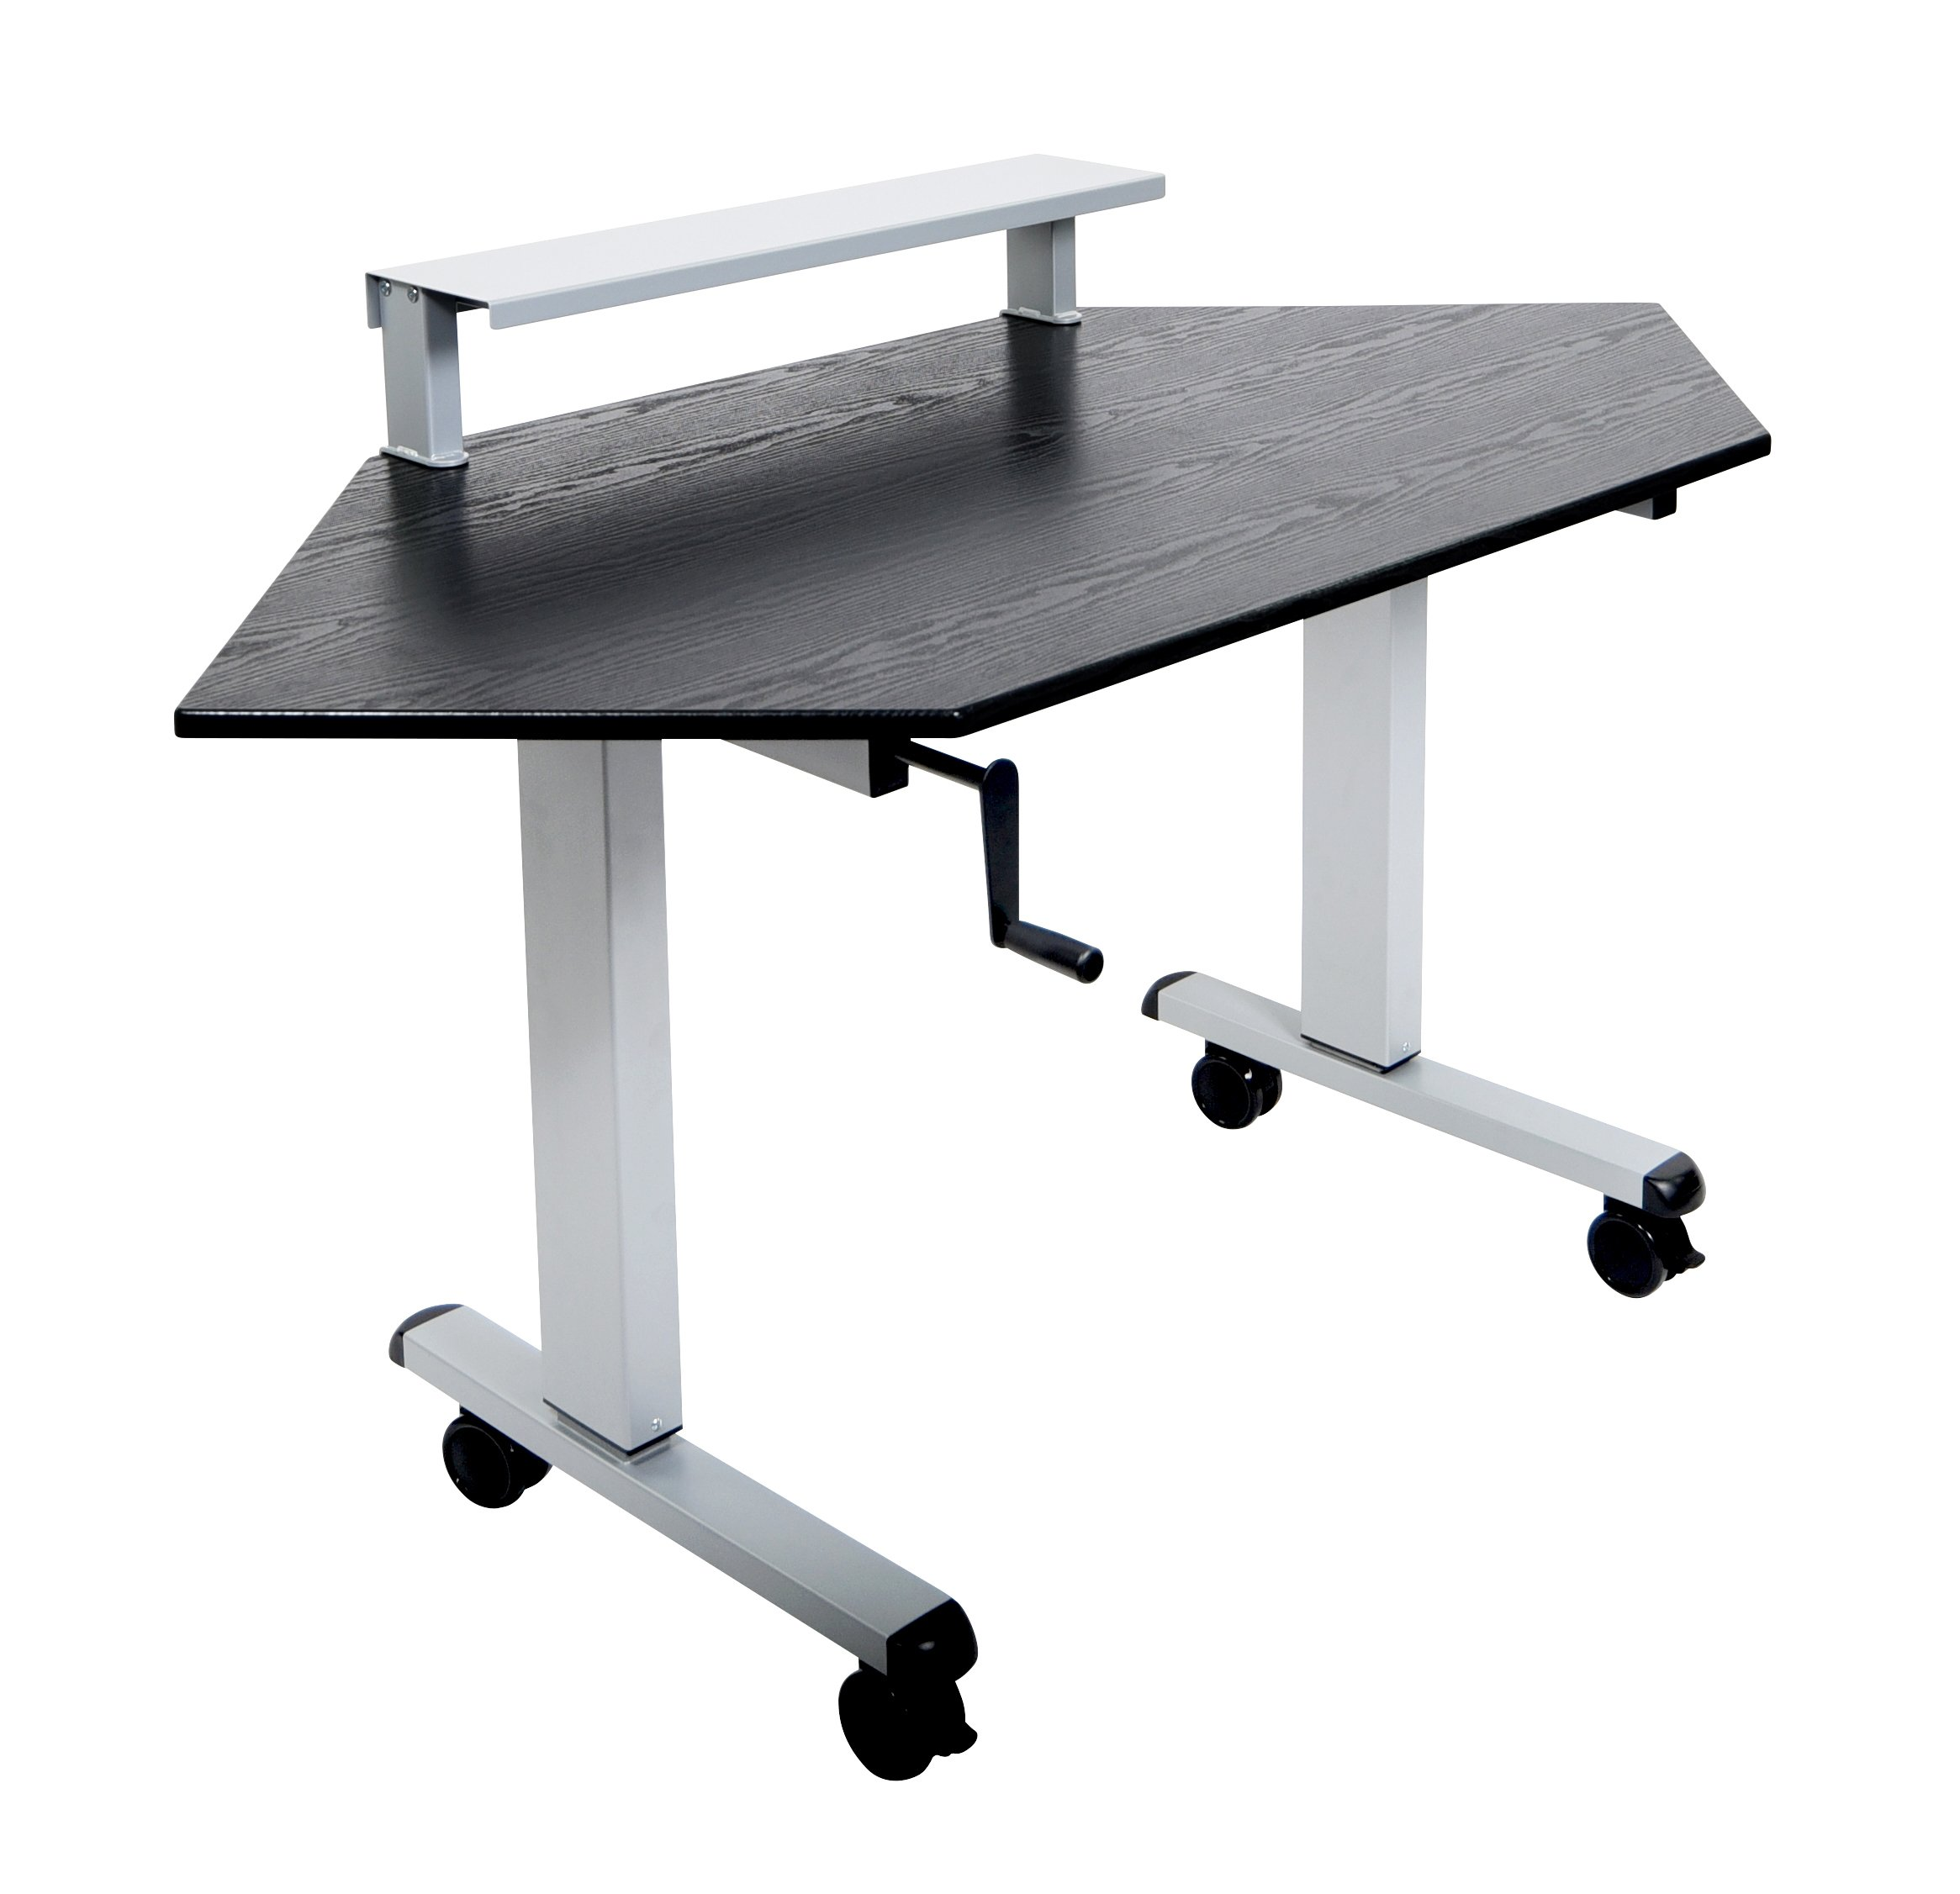 DMD Adjustable Standing Corner Desk, Sit or Standing Desk, Workstation with Shelf, Crank Handle